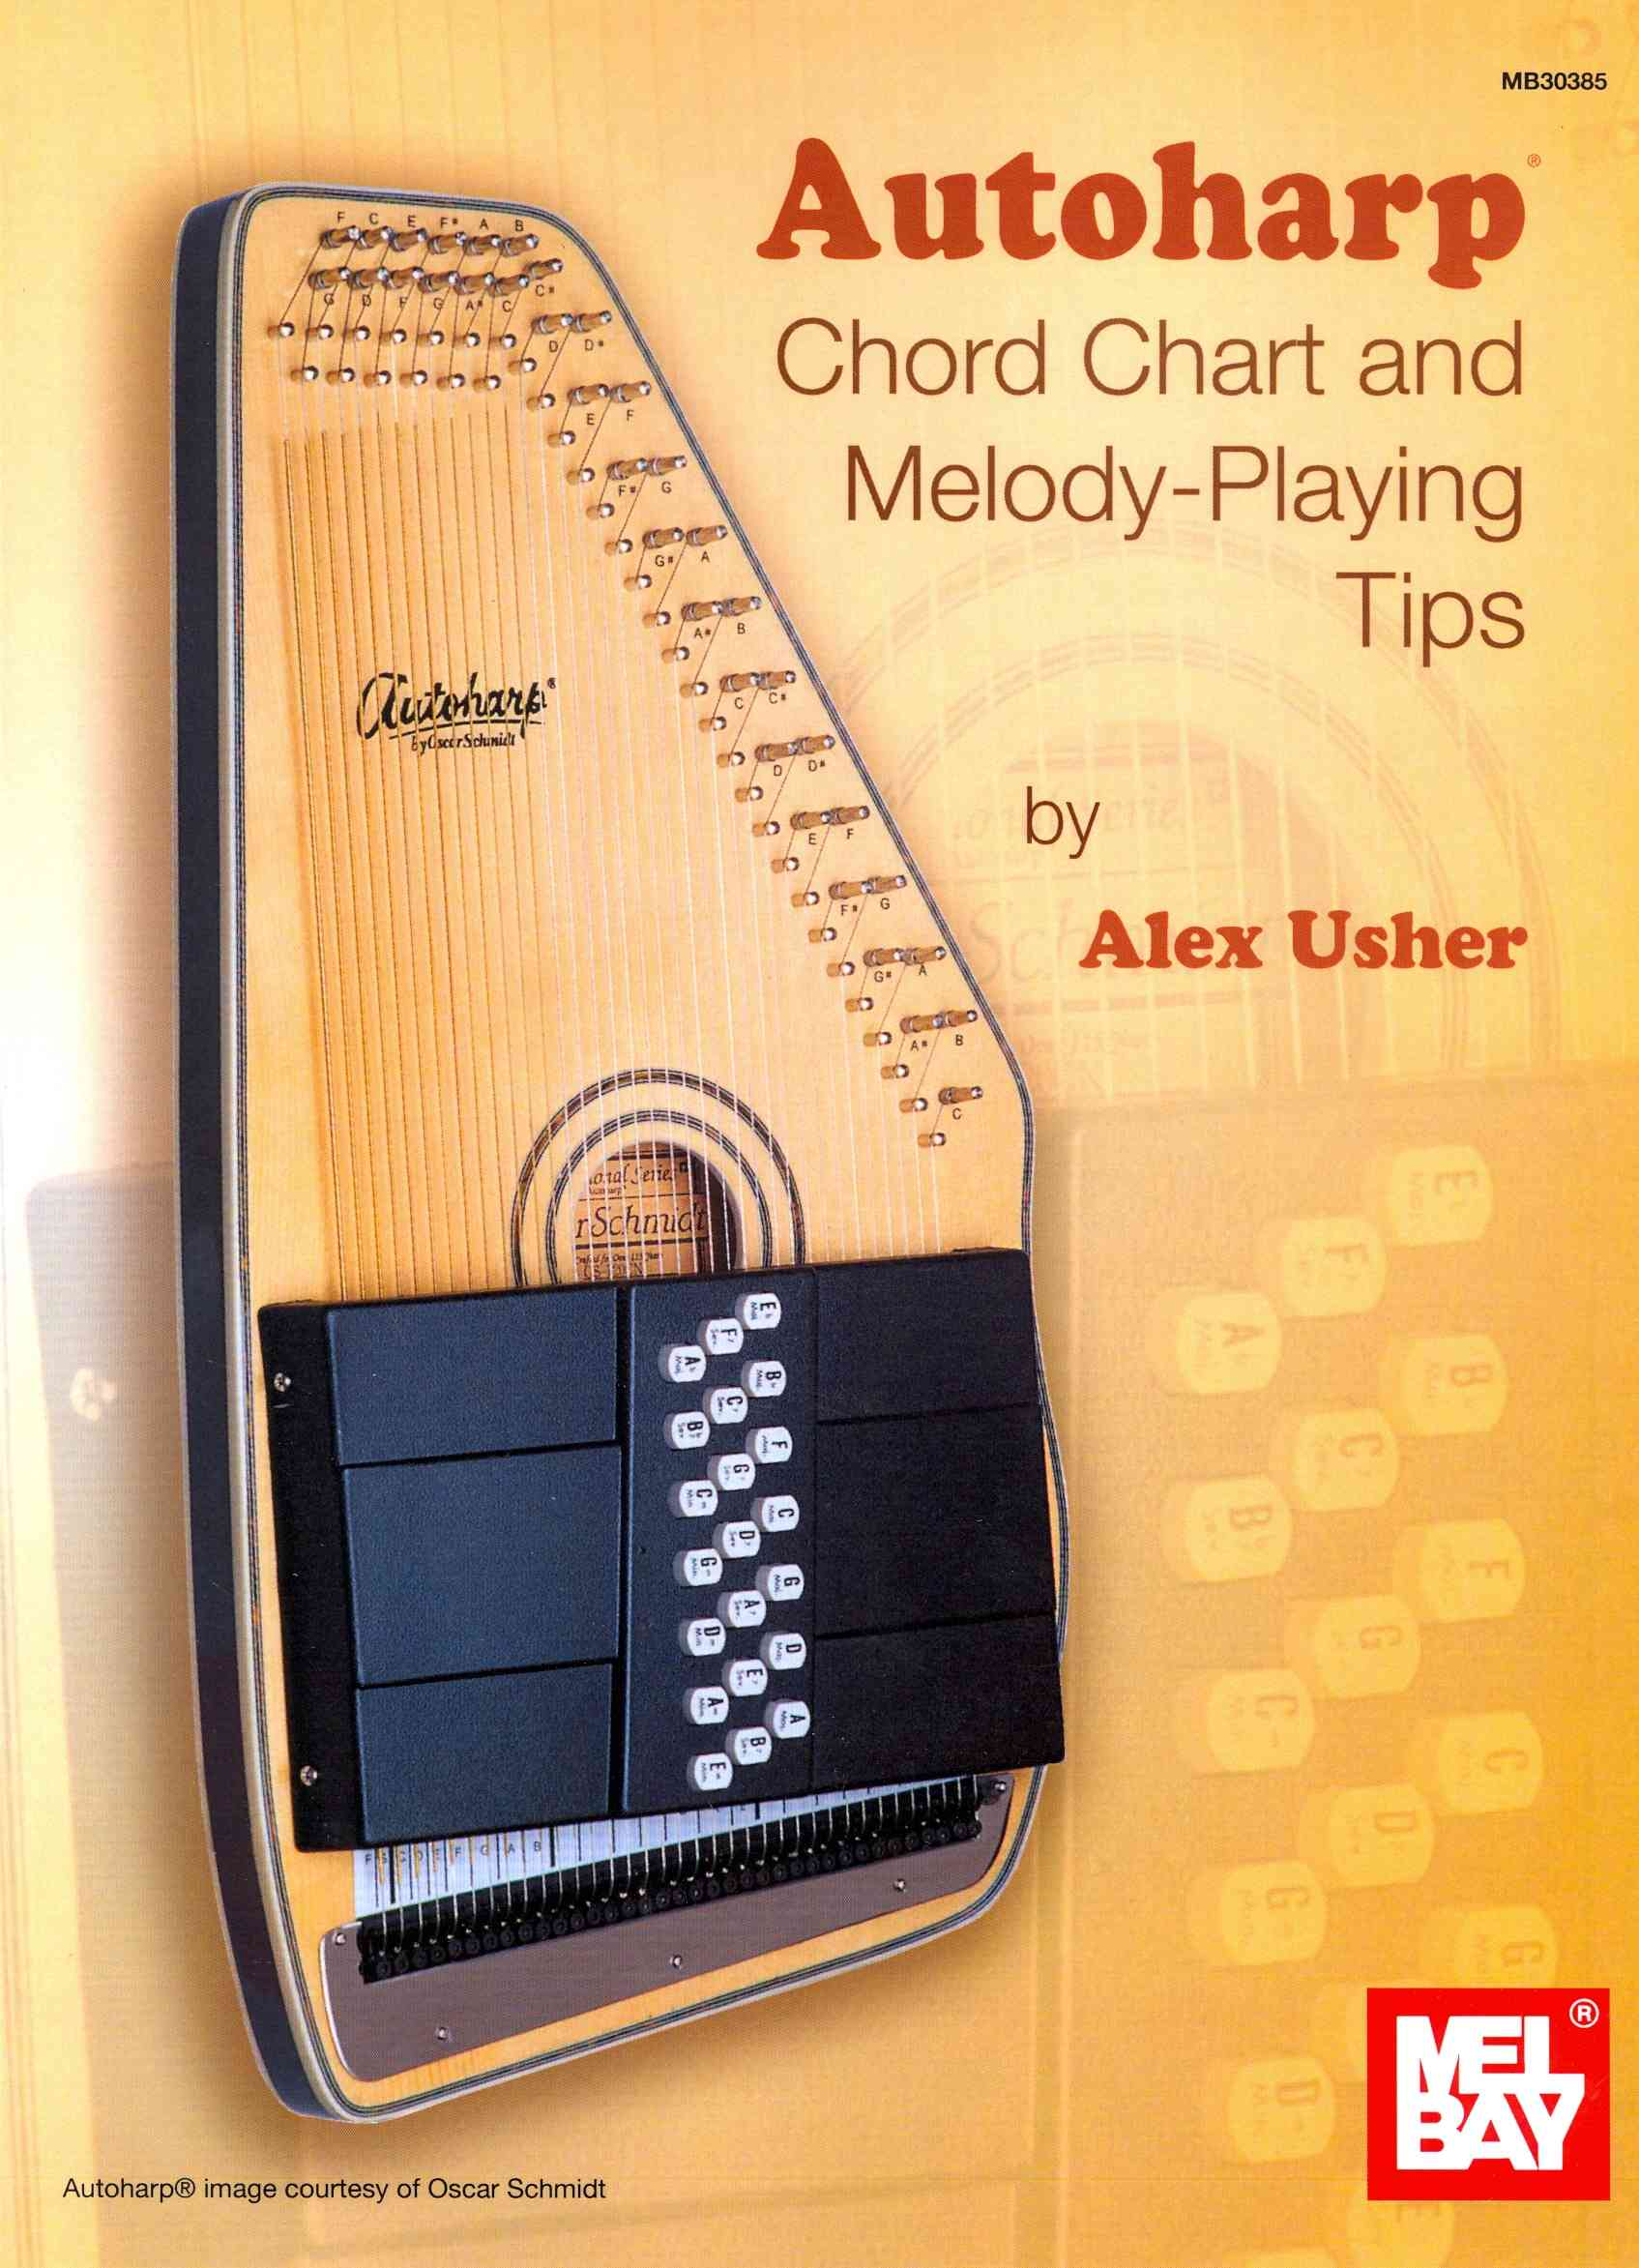 Autoharp Chord Chart and Melody-Playing Tips By Usher, Alex